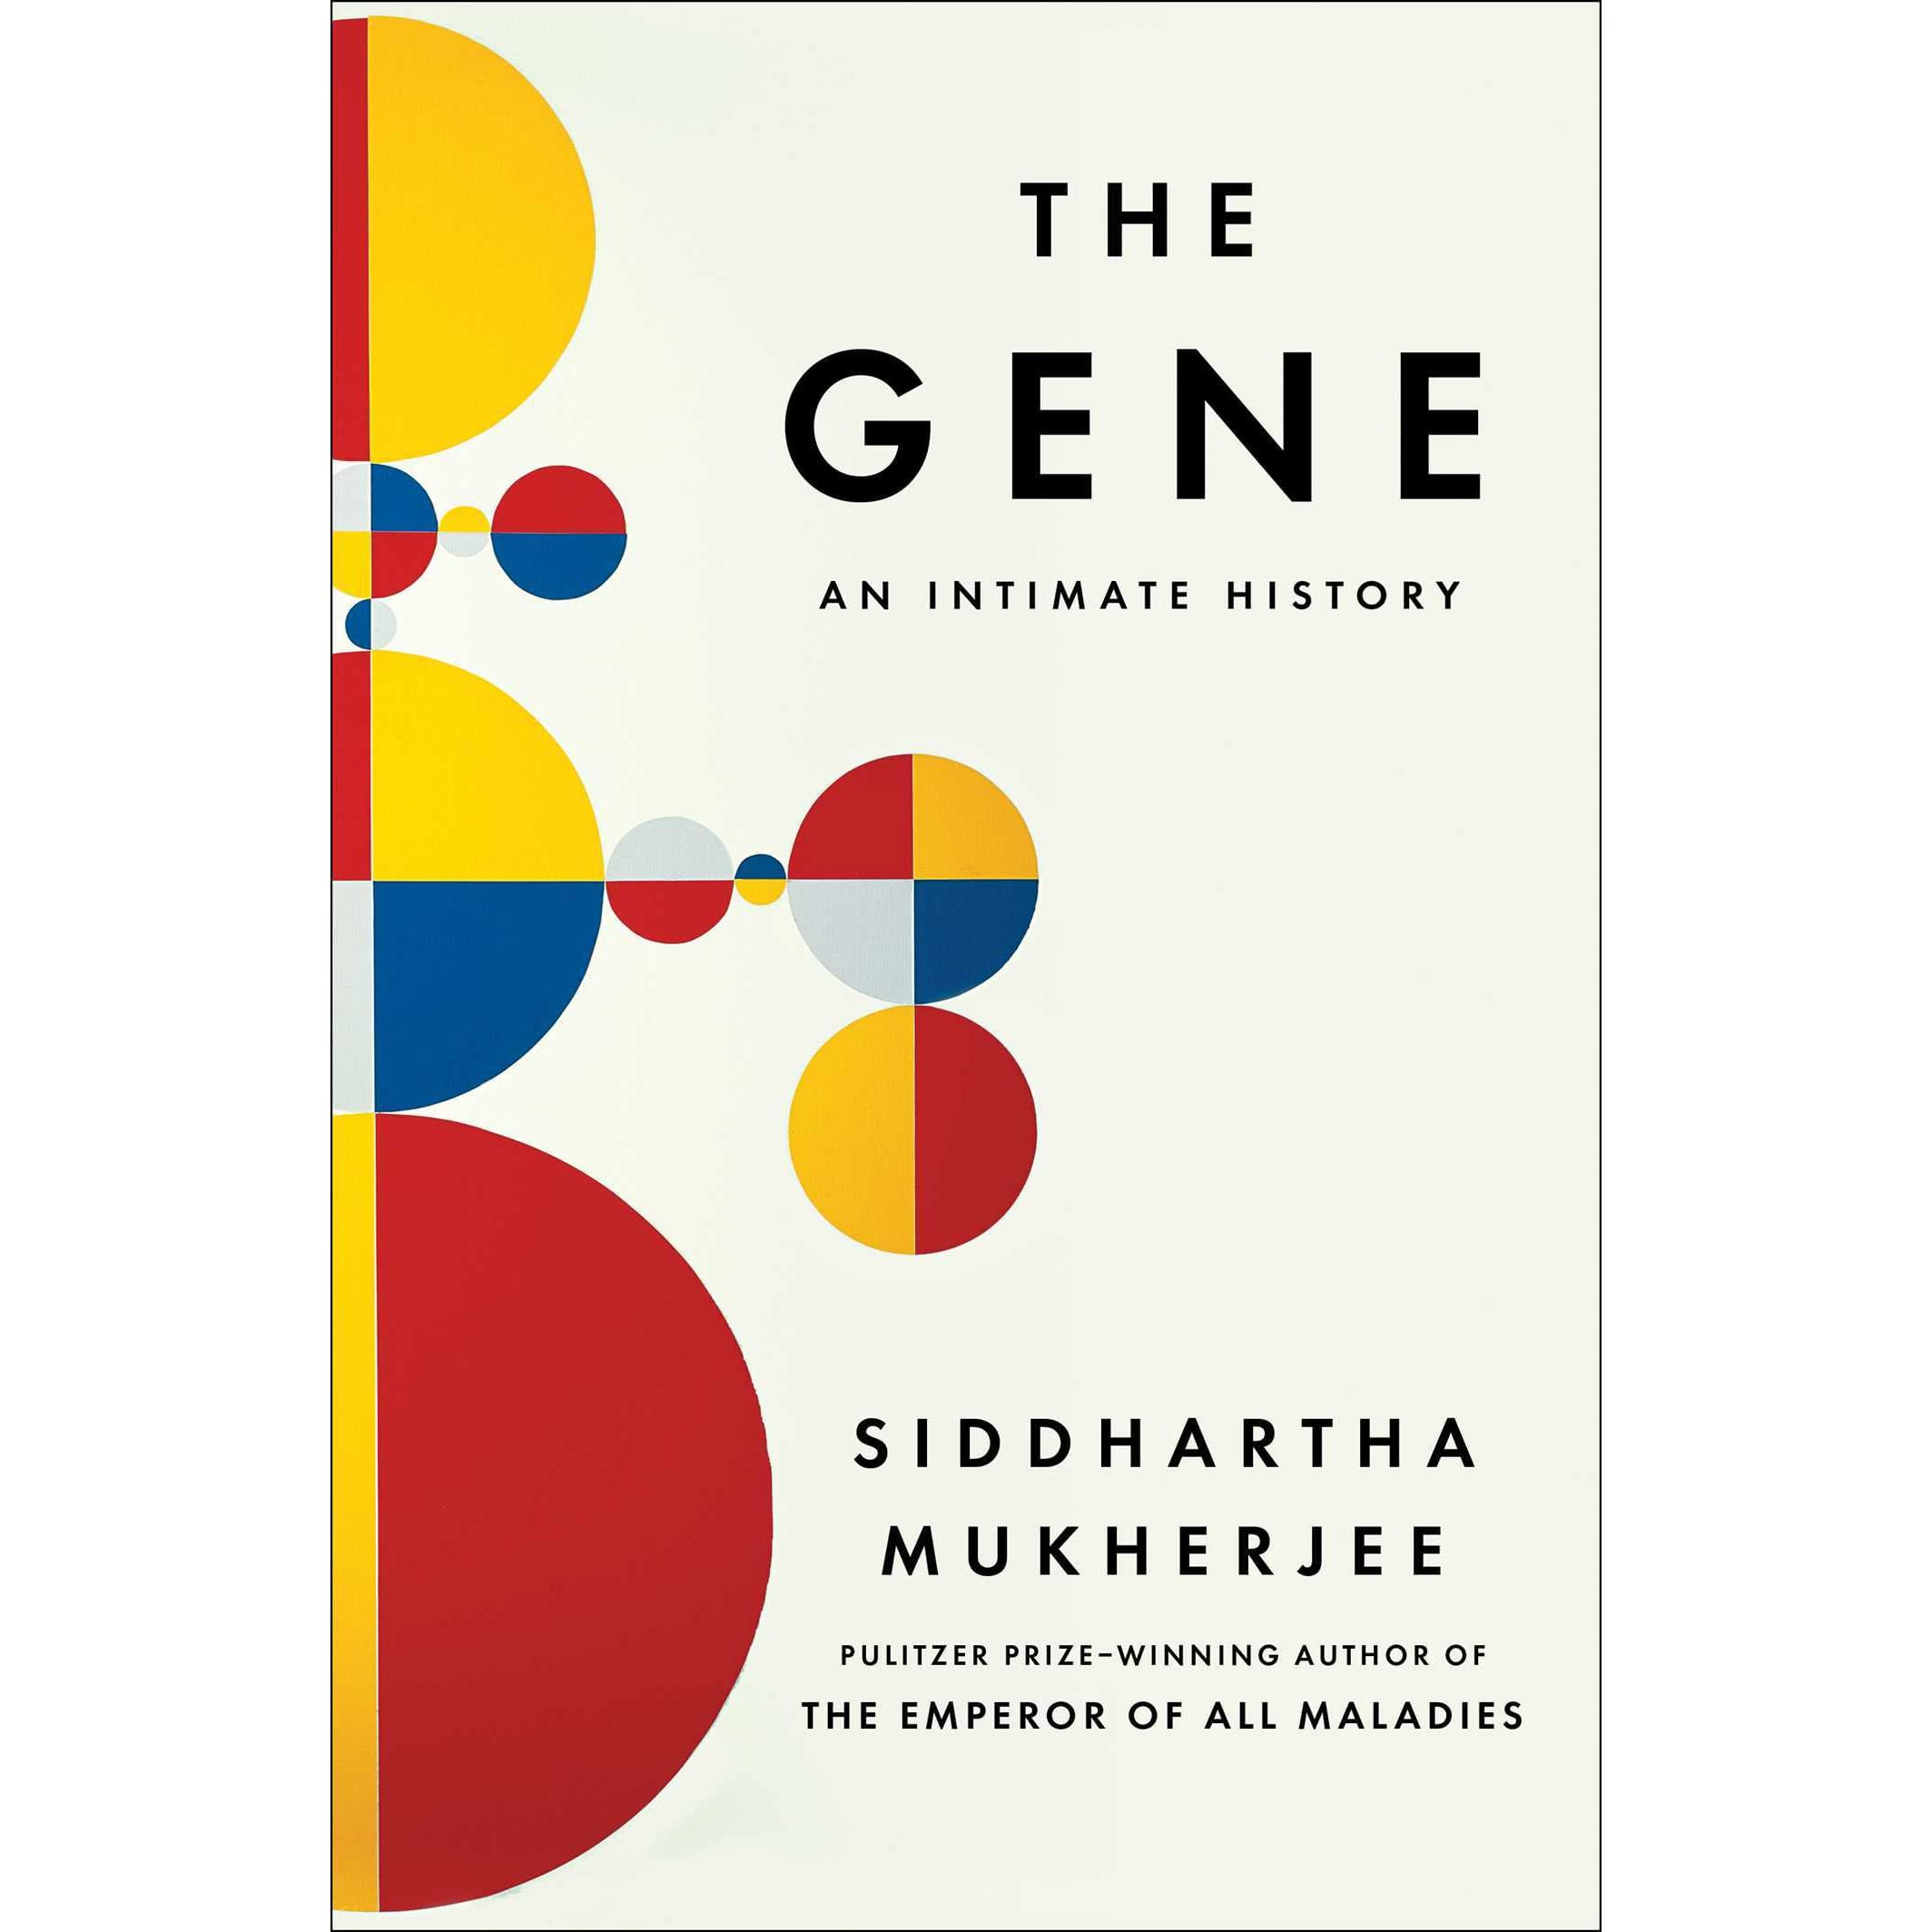 256a11c97588 The Gene: An Intimate History by Siddhartha Mukherjee